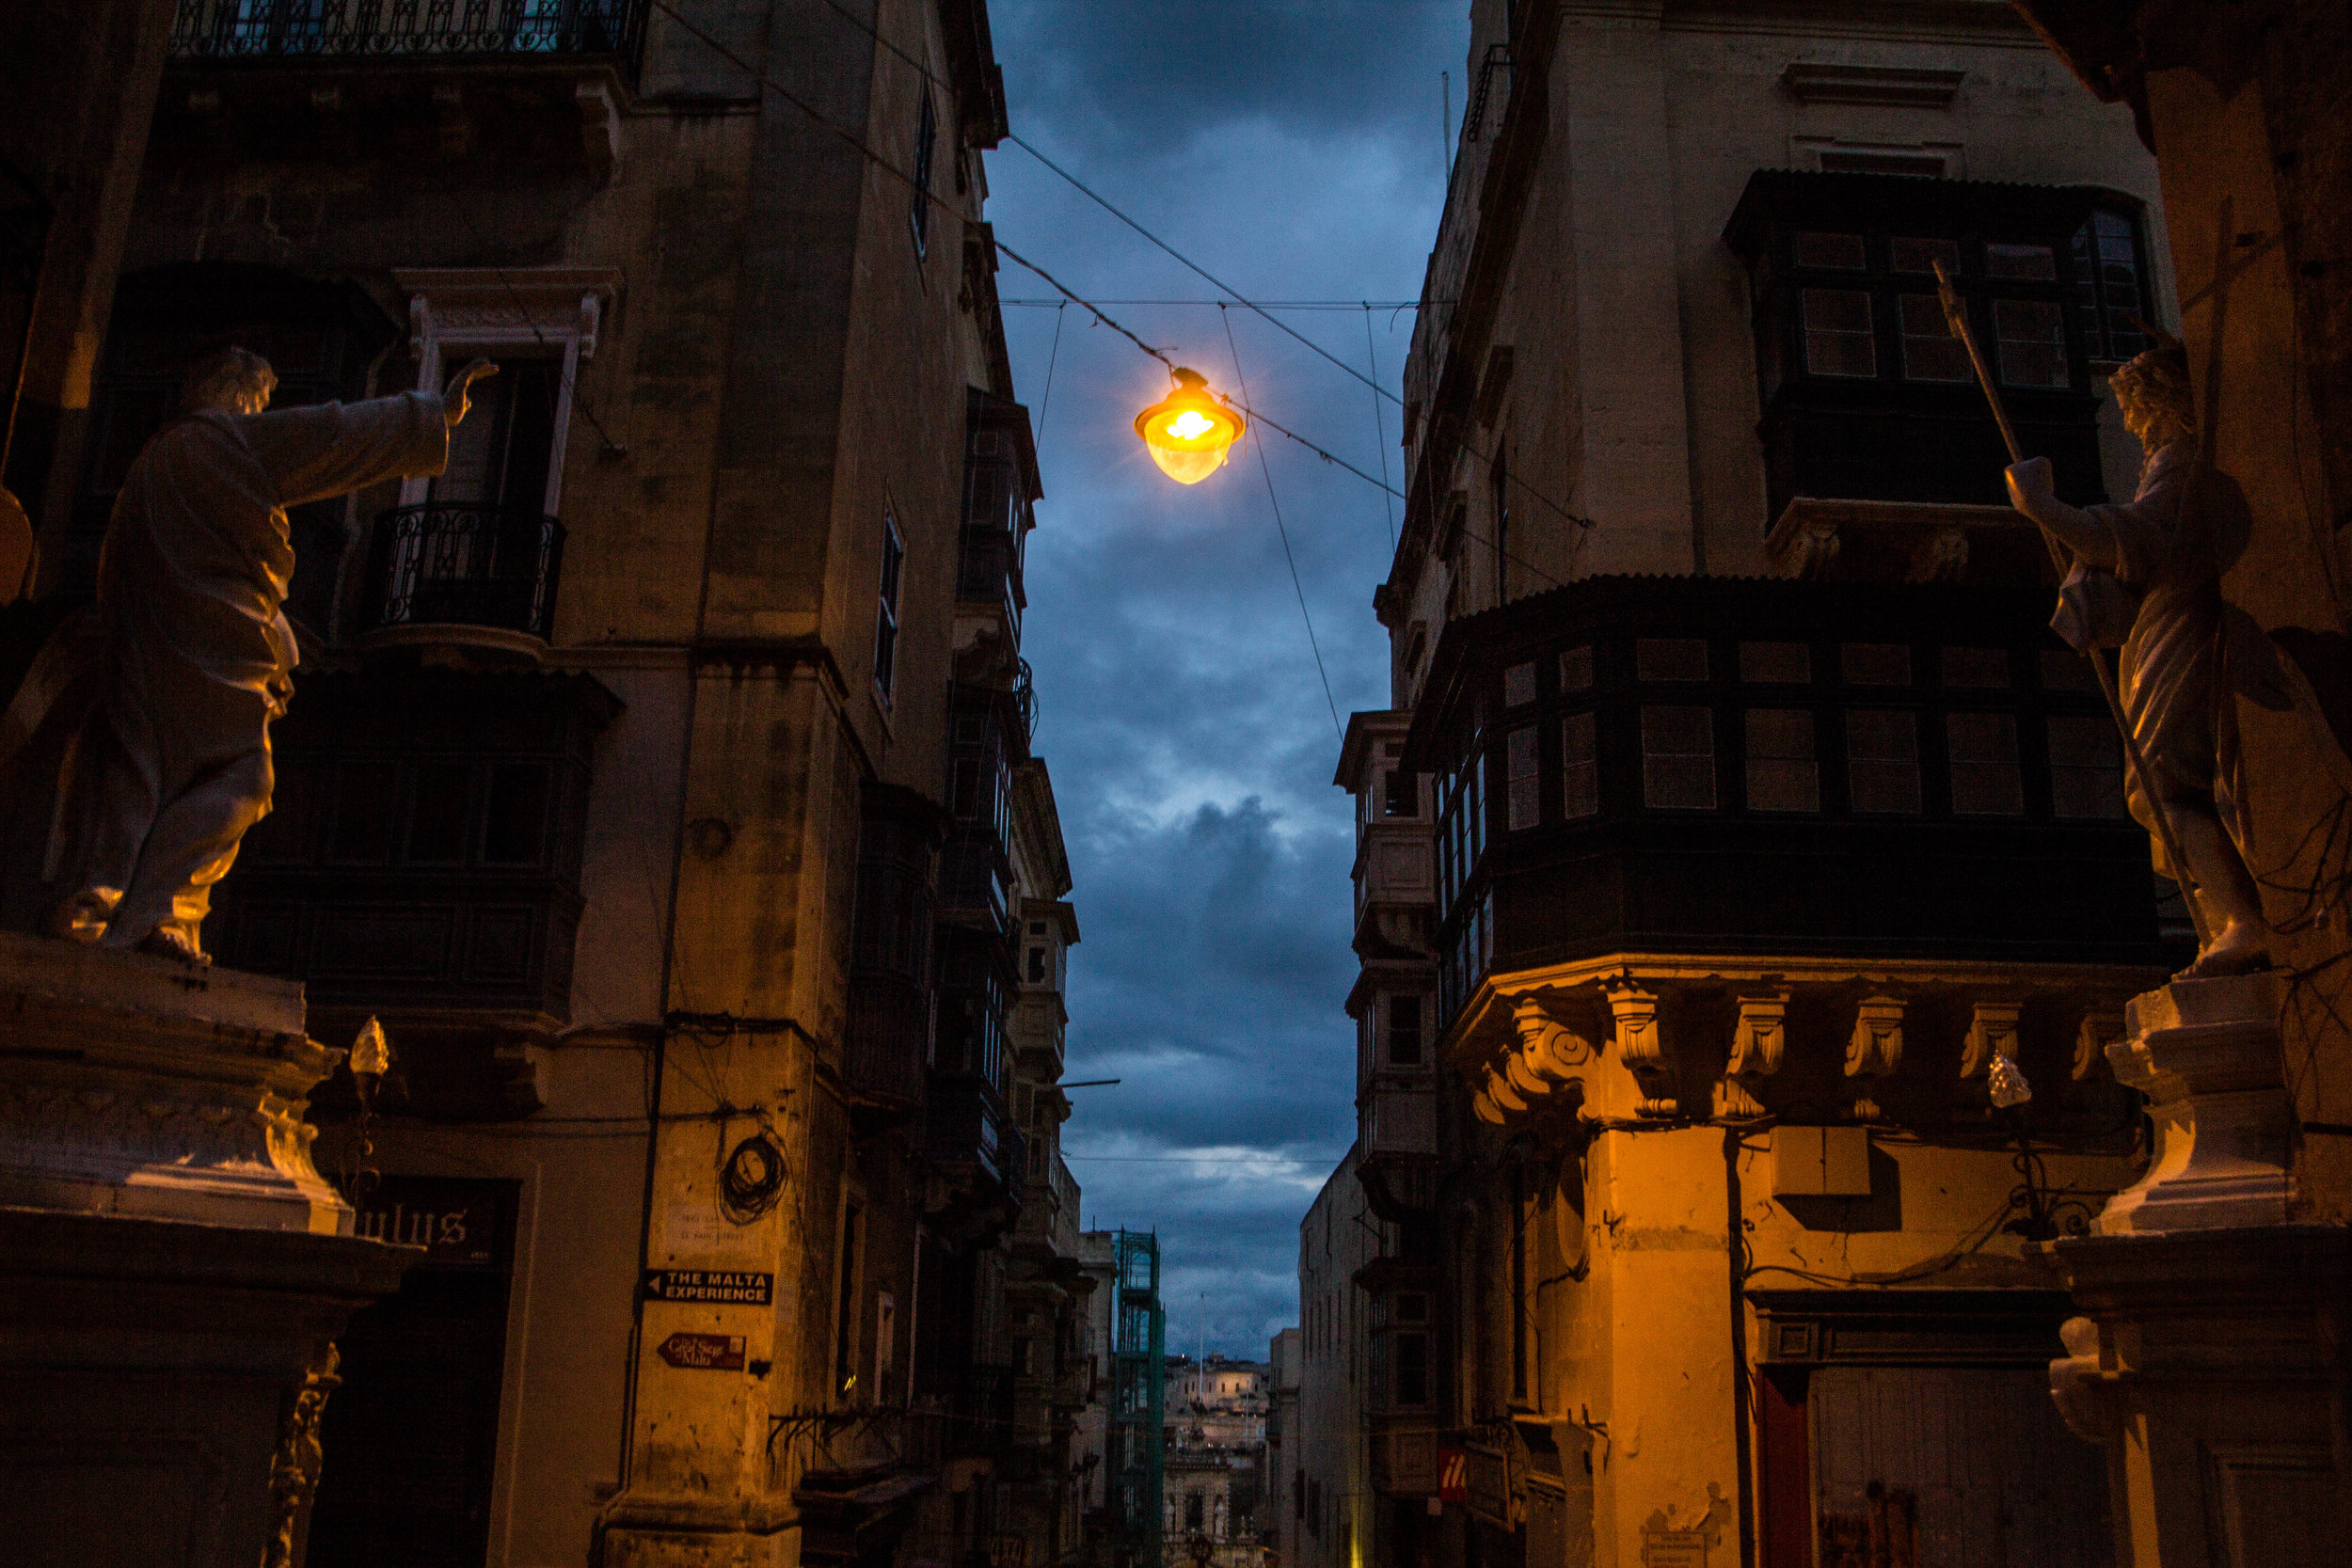 night-street-photography-valletta-malta-3.jpg